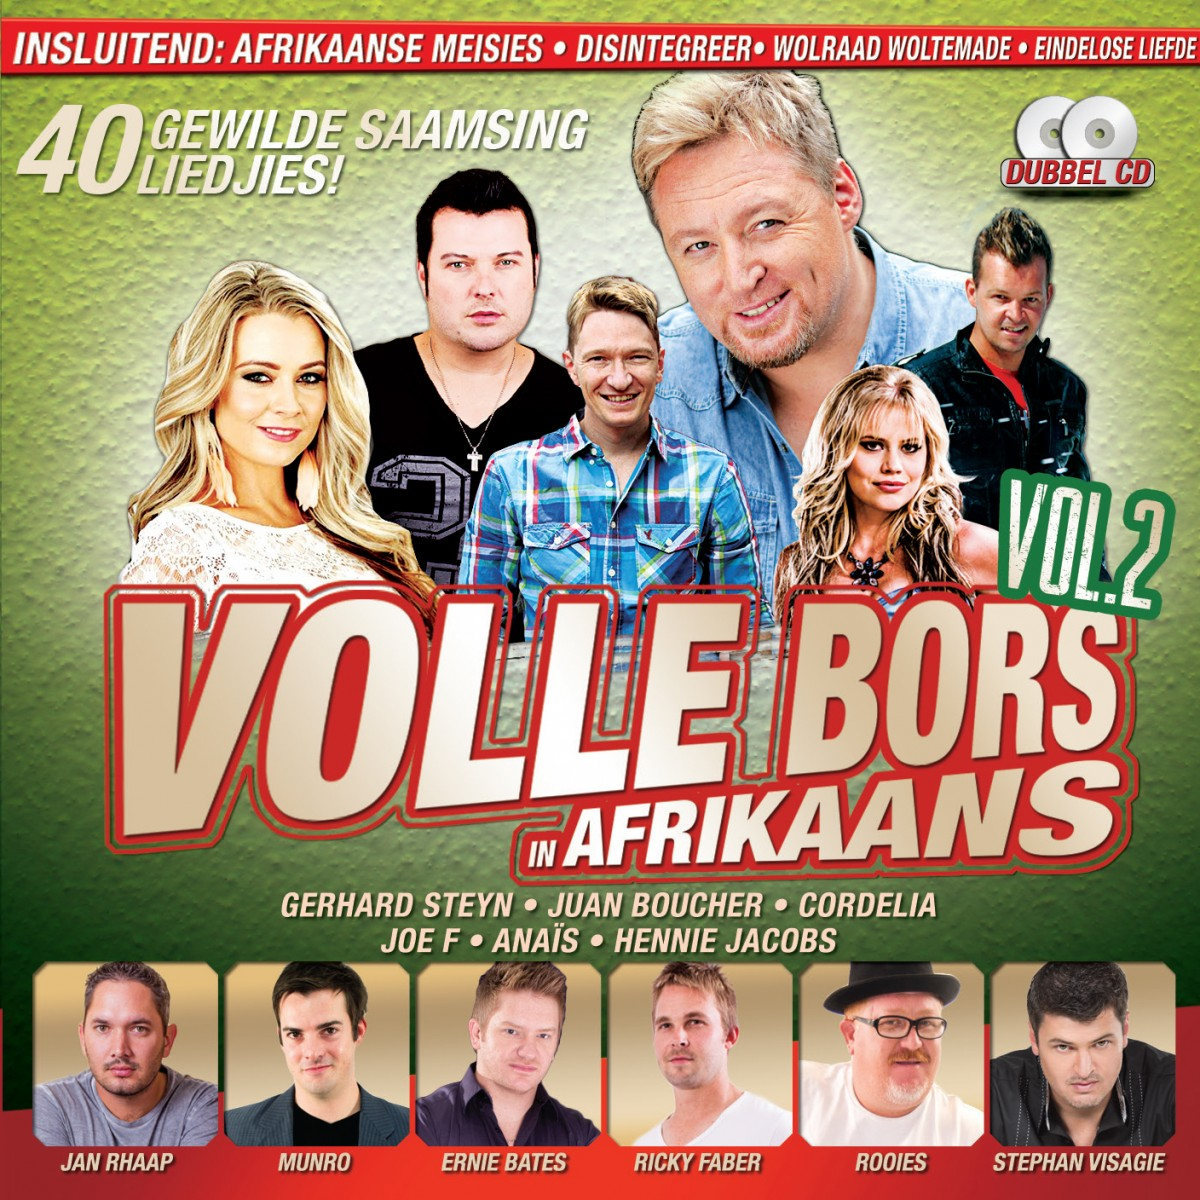 Volle Bors In Afrikaans Vol.2 CD - VONK310